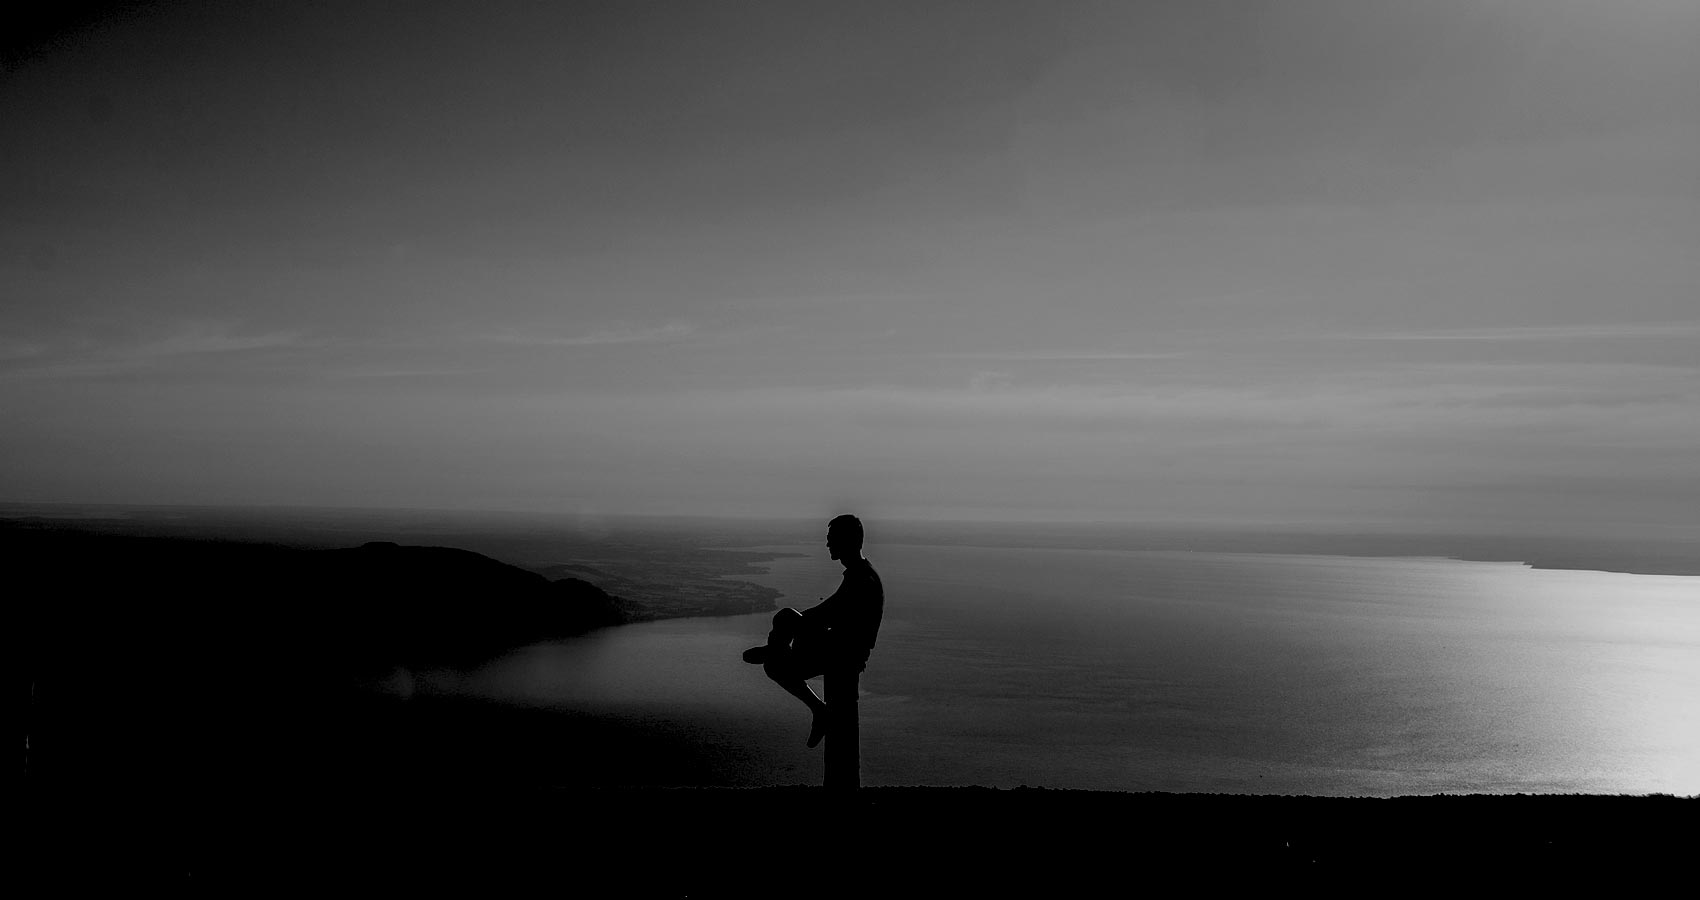 The Shadow Of Longing, poetry by Umid Najjari at Spillwords.com